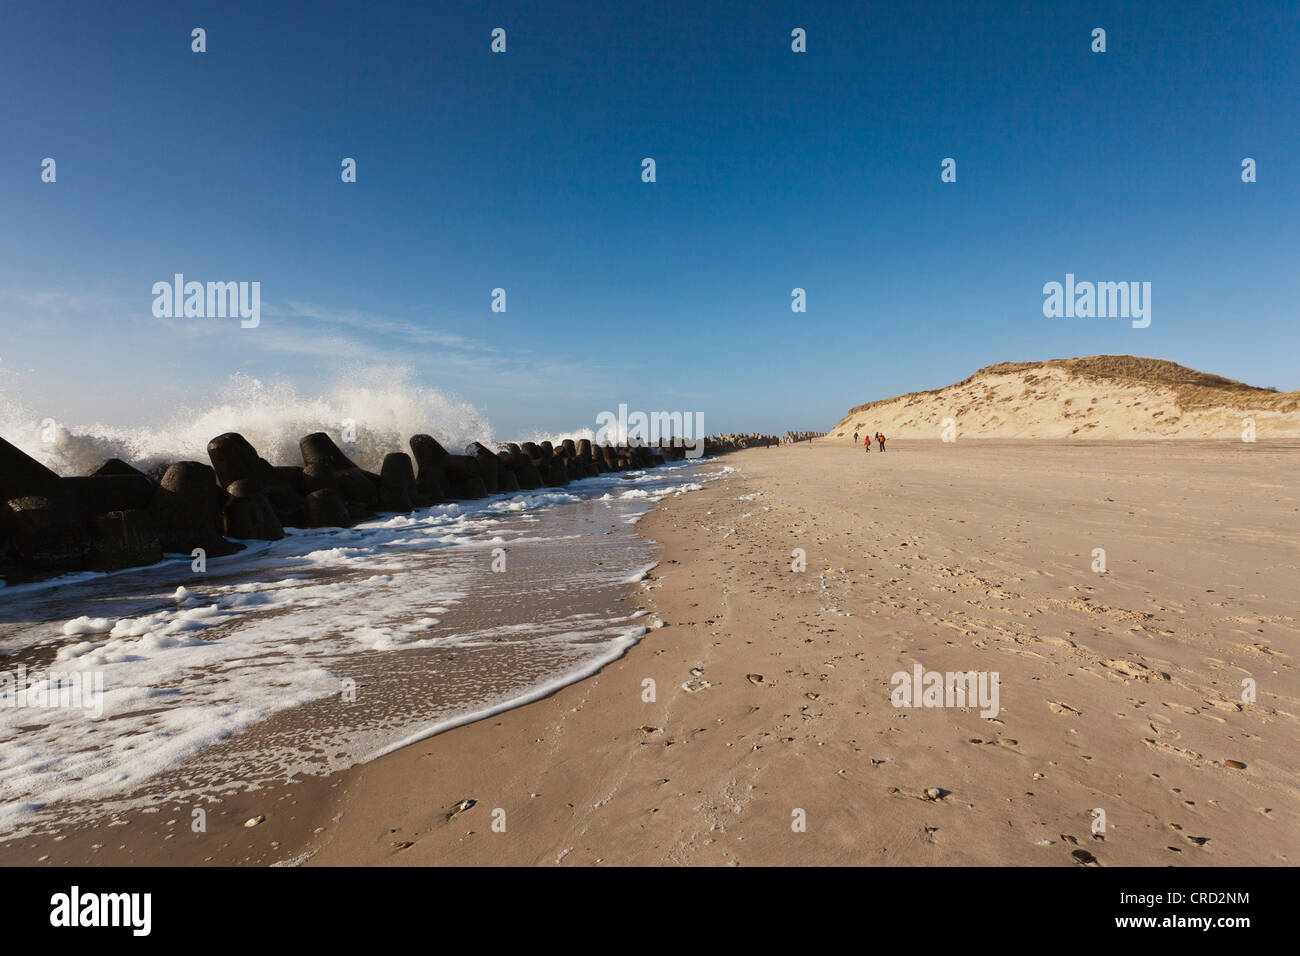 Surf and tetrapod barriers, Hörnum, Sylt, Schleswig-Holstein, Germany, Europe - Stock Image